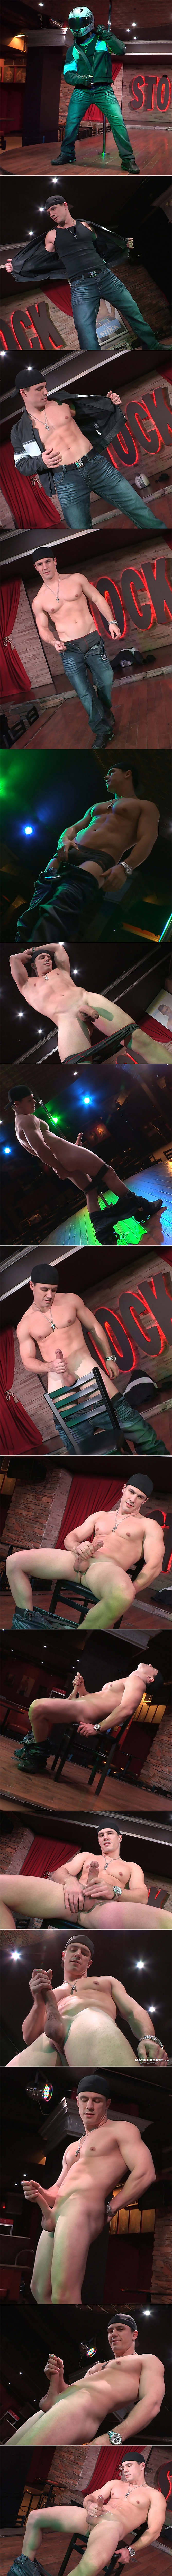 Maskurbate Ricky Live At Stock Bar Stripper Solo Masturbation Scene Big Uncut Cock Smooth Muscular Body Cumshot Trobbing Cock